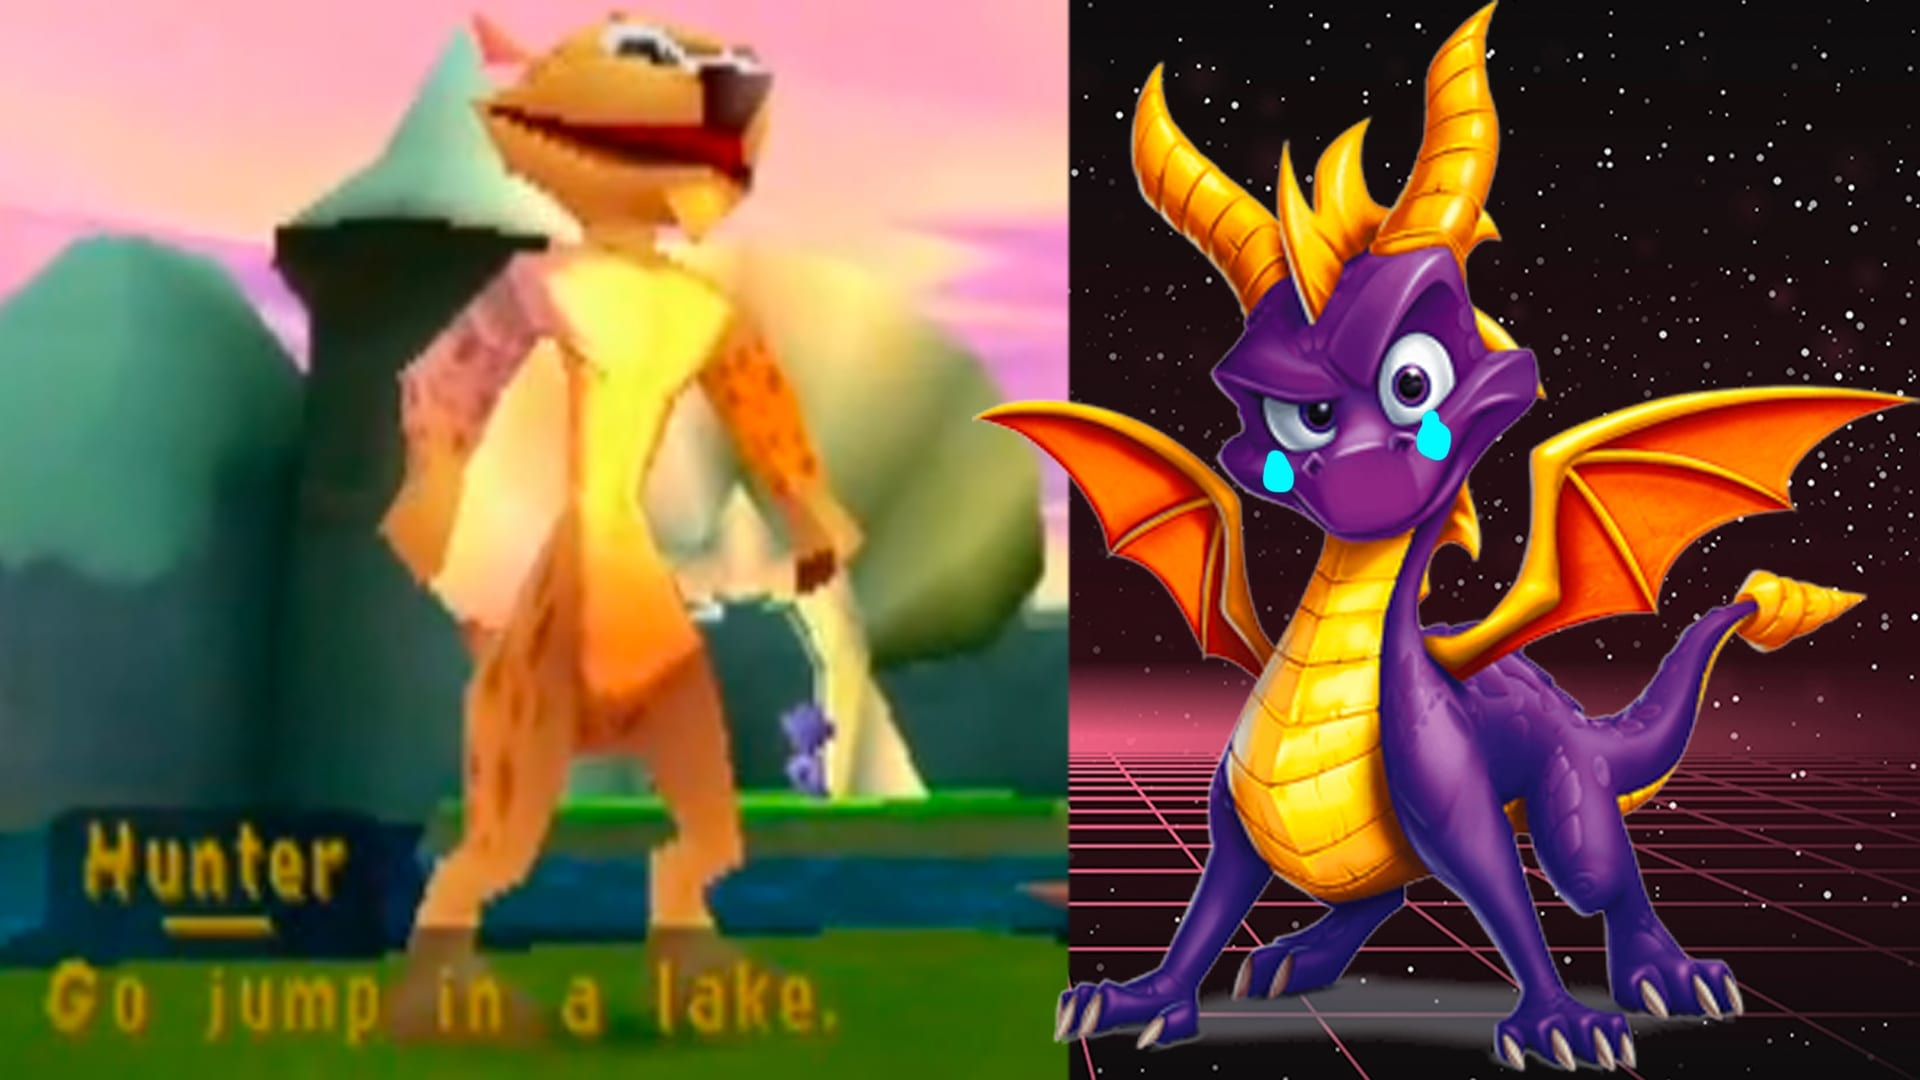 Spyro 3 PSX Prototypes Have Given Us The Best Reaction Images Ever